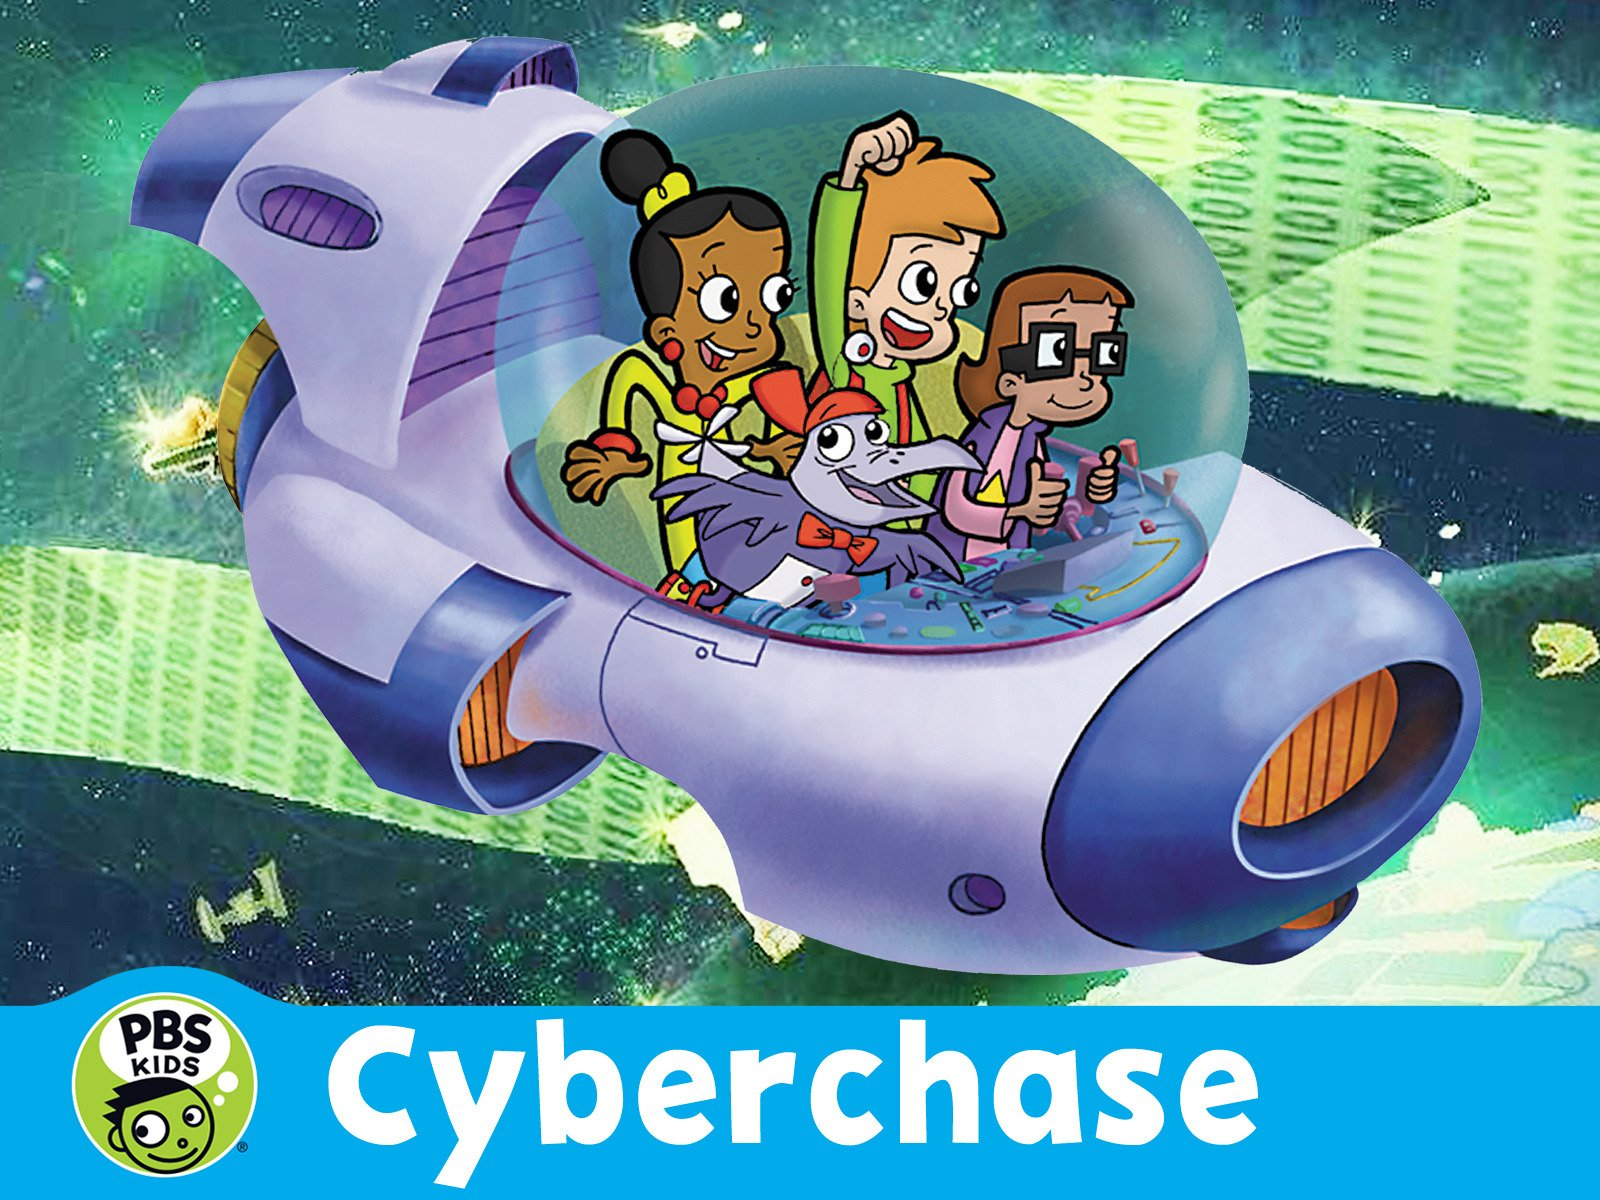 amazoncom cyberchase season 3 nelvana limitedwnet amazon digital services llc - Cyberchase Halloween